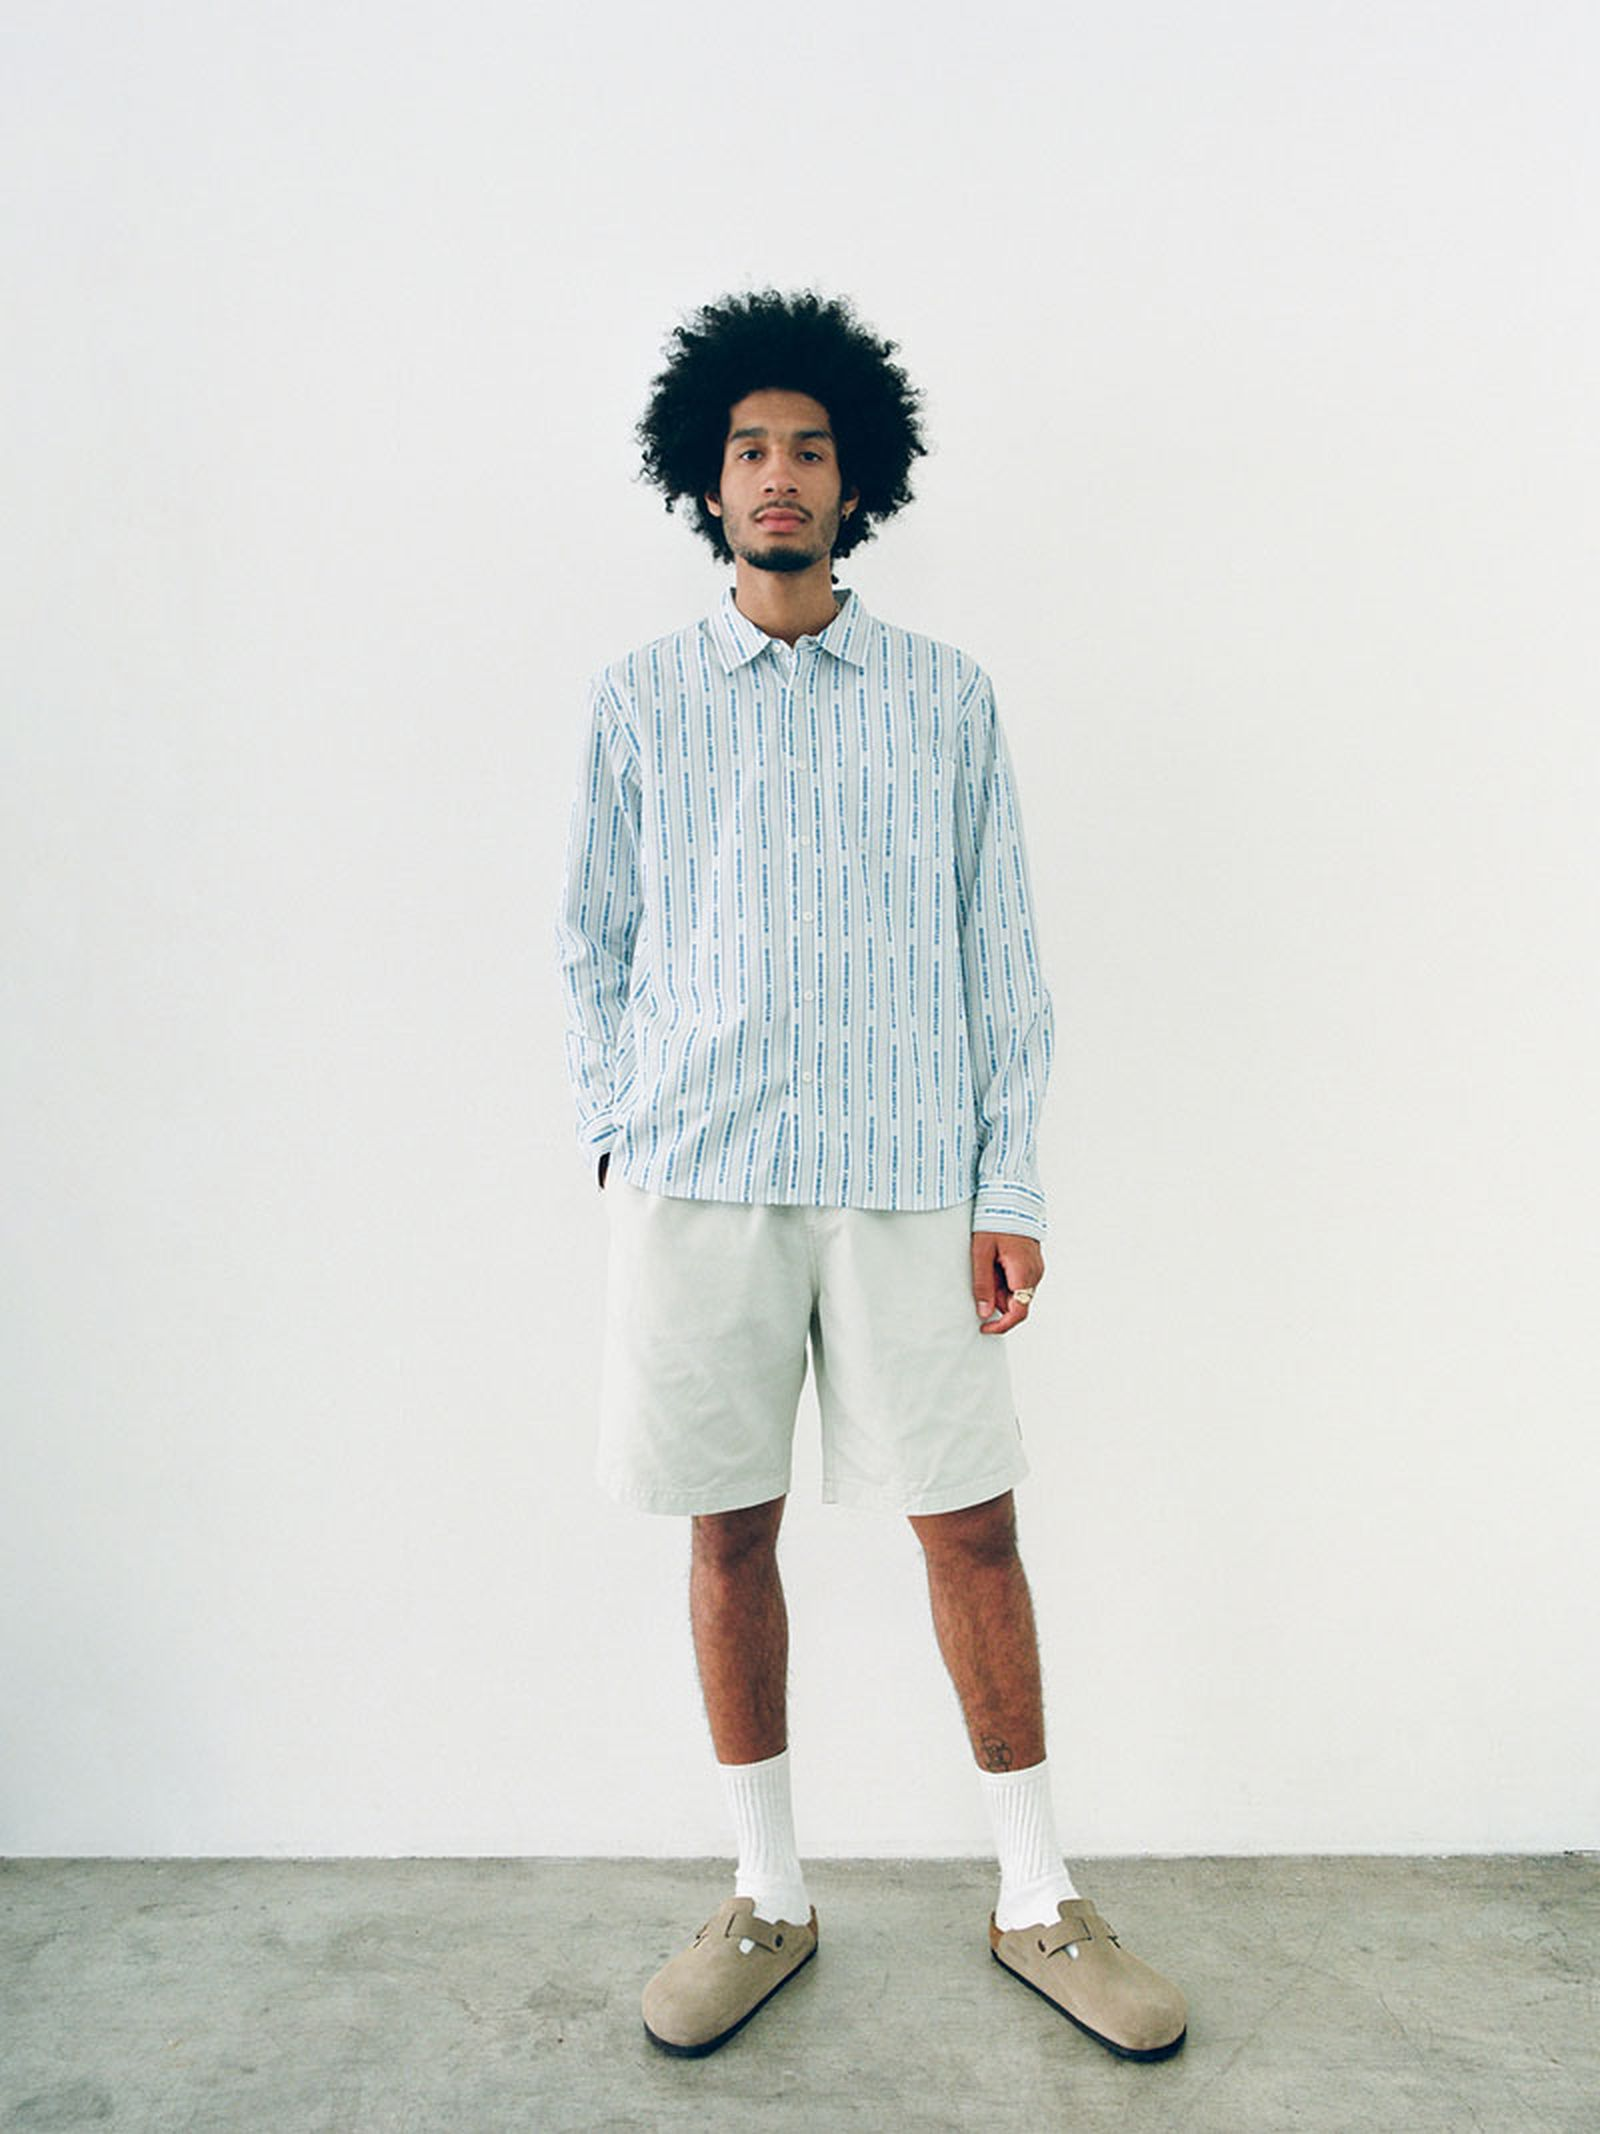 Stussy SP20 Lookbook - D2 Mens - 9